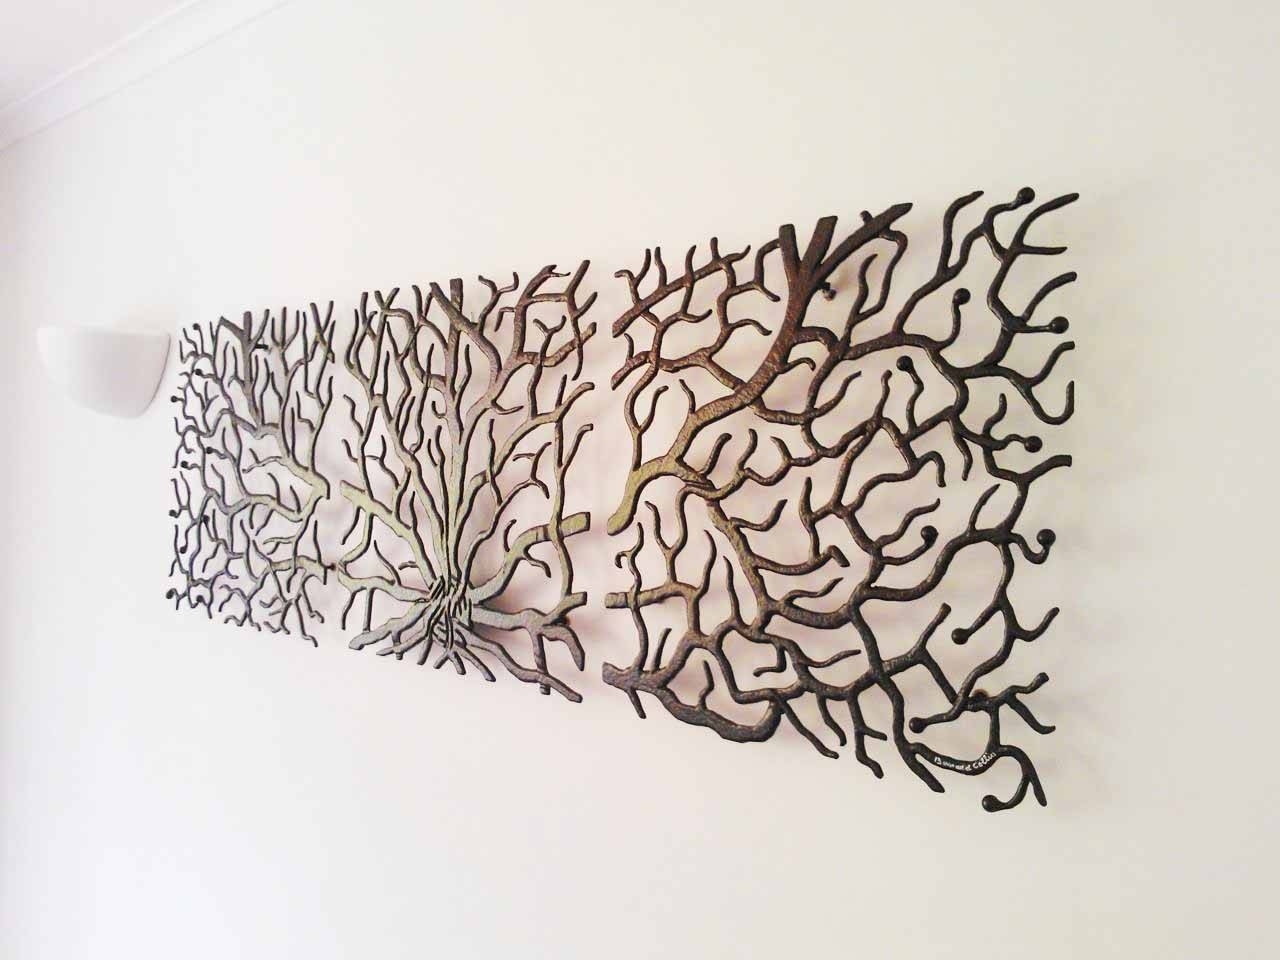 Wall Art Designs: Coral Wall Art Magnificent Metal Tree Wall Art Intended For Newest Metal Wall Art Tree (View 18 of 20)